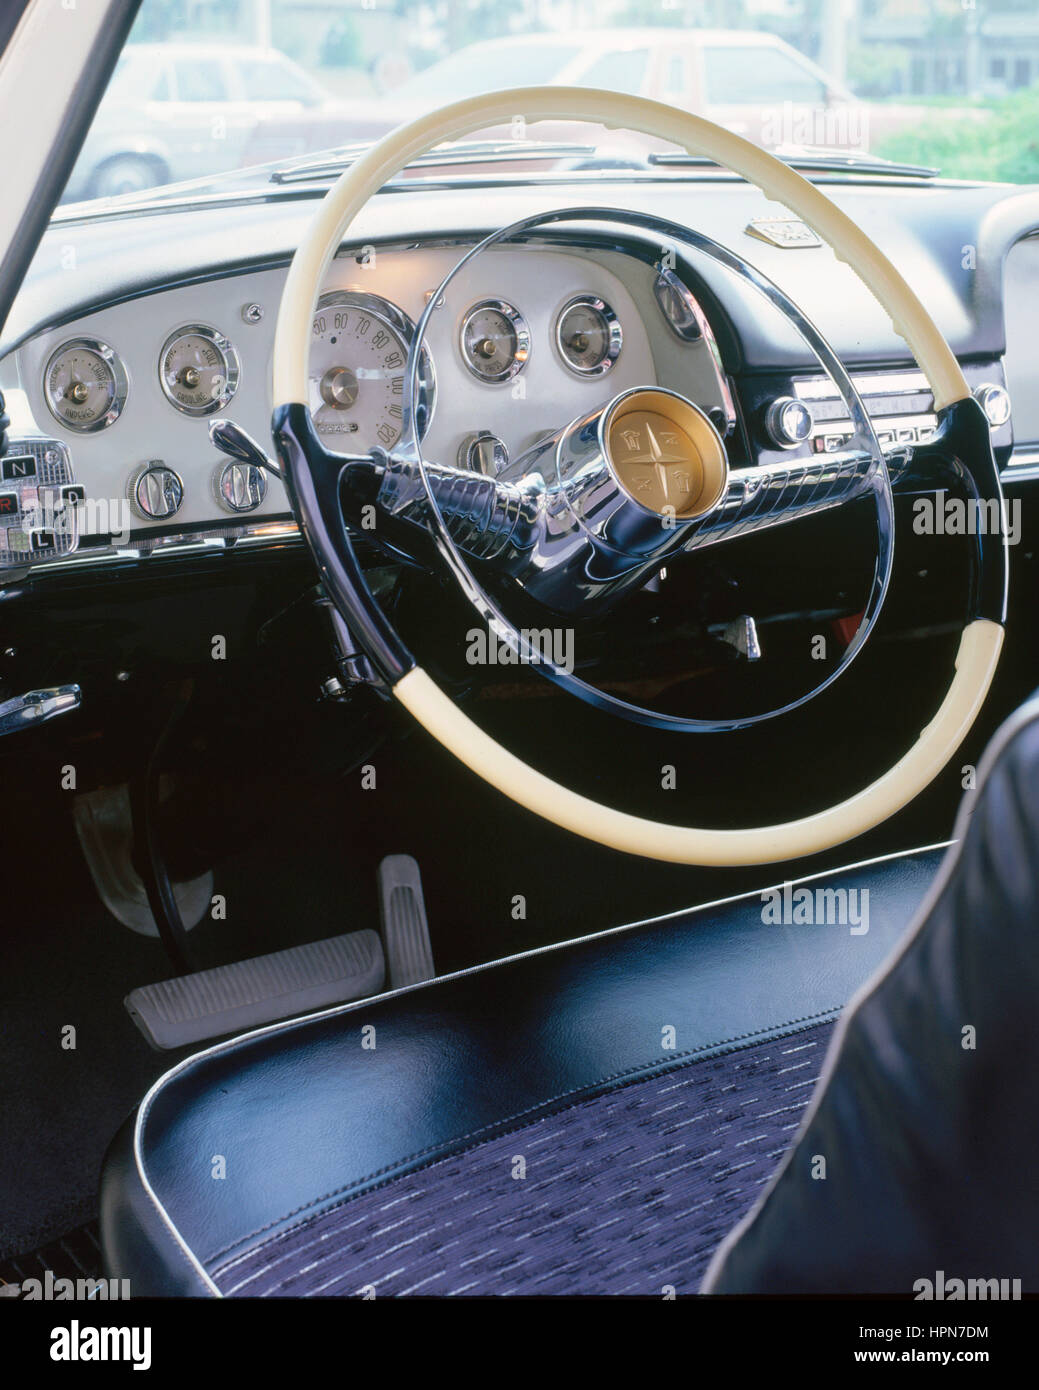 1956 De Soto Firedome dashboard Stock Photo